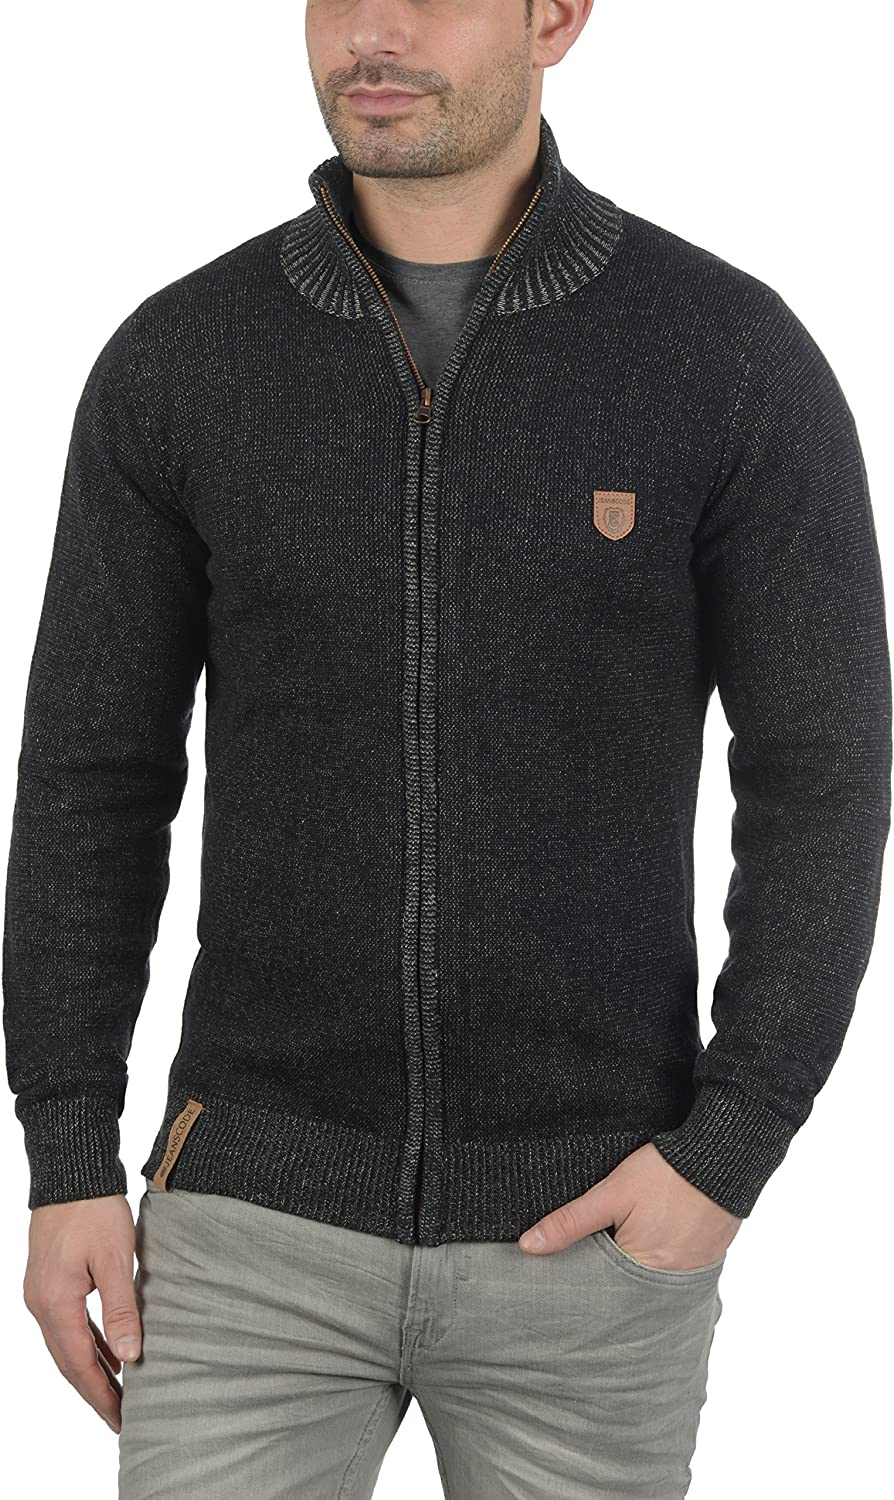 Indicode Andy Mens Cardigan Knit Jacket With Funnel Neck With Zipper